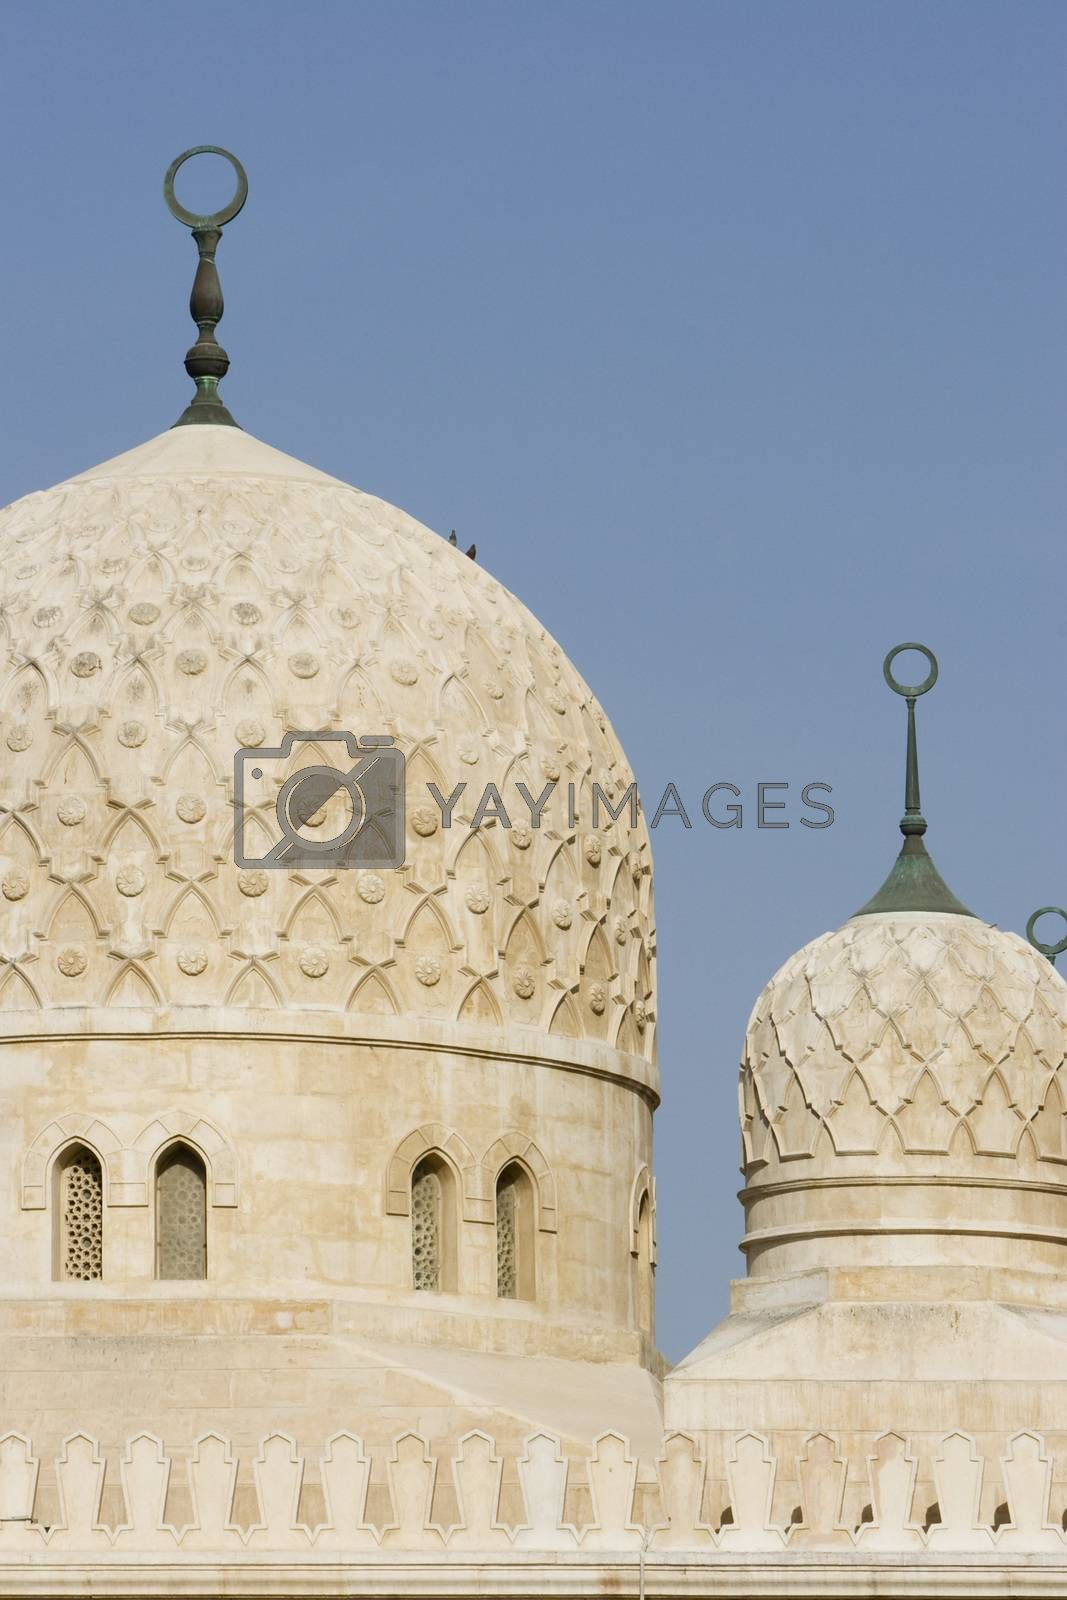 UAE Dubai architectural detail of the domes of the Jumeirah Mosque by moodboard